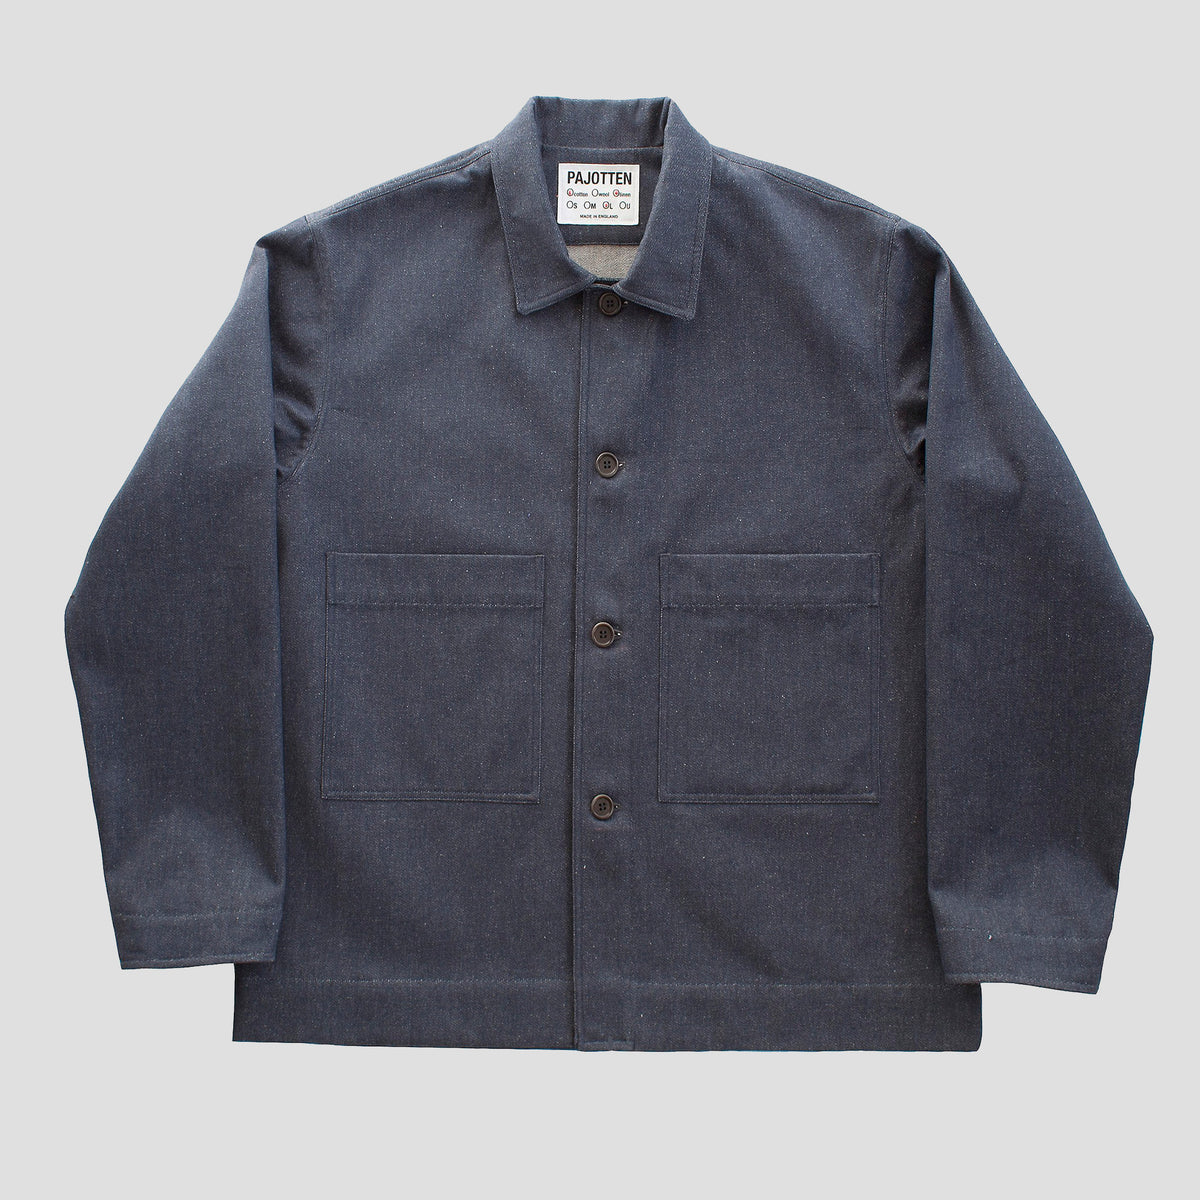 menswear workers jacket in a blue recycled denim cotton/linen mix